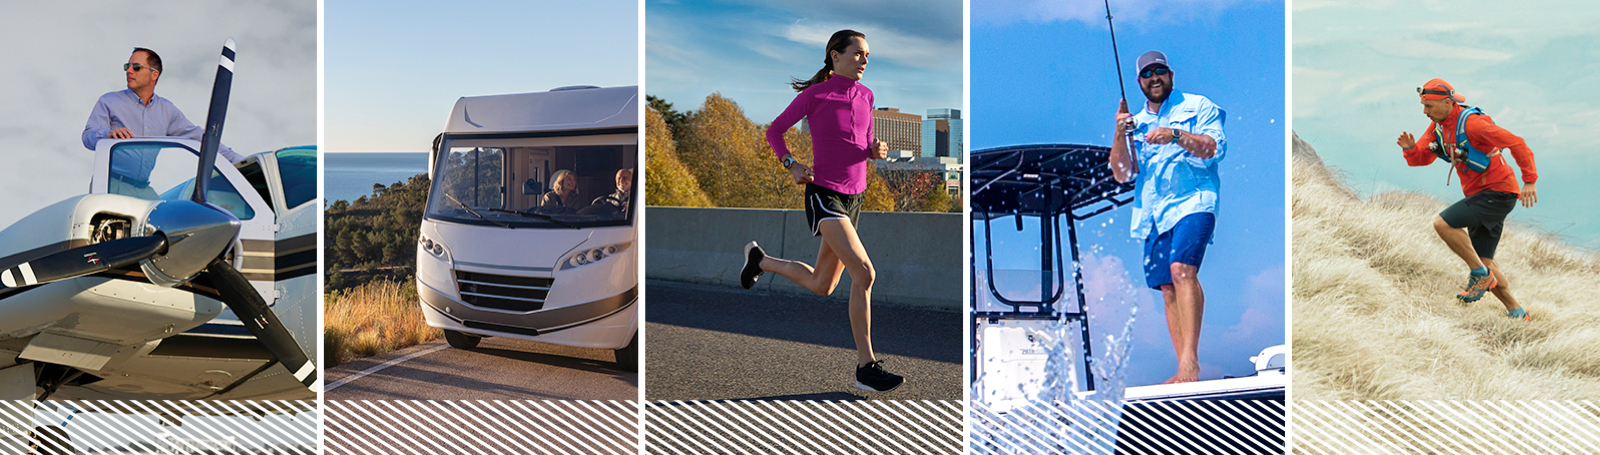 About Garmin Lifestyle - Aviation, Automotive, Fitness, Marine and Outdoor Recreation